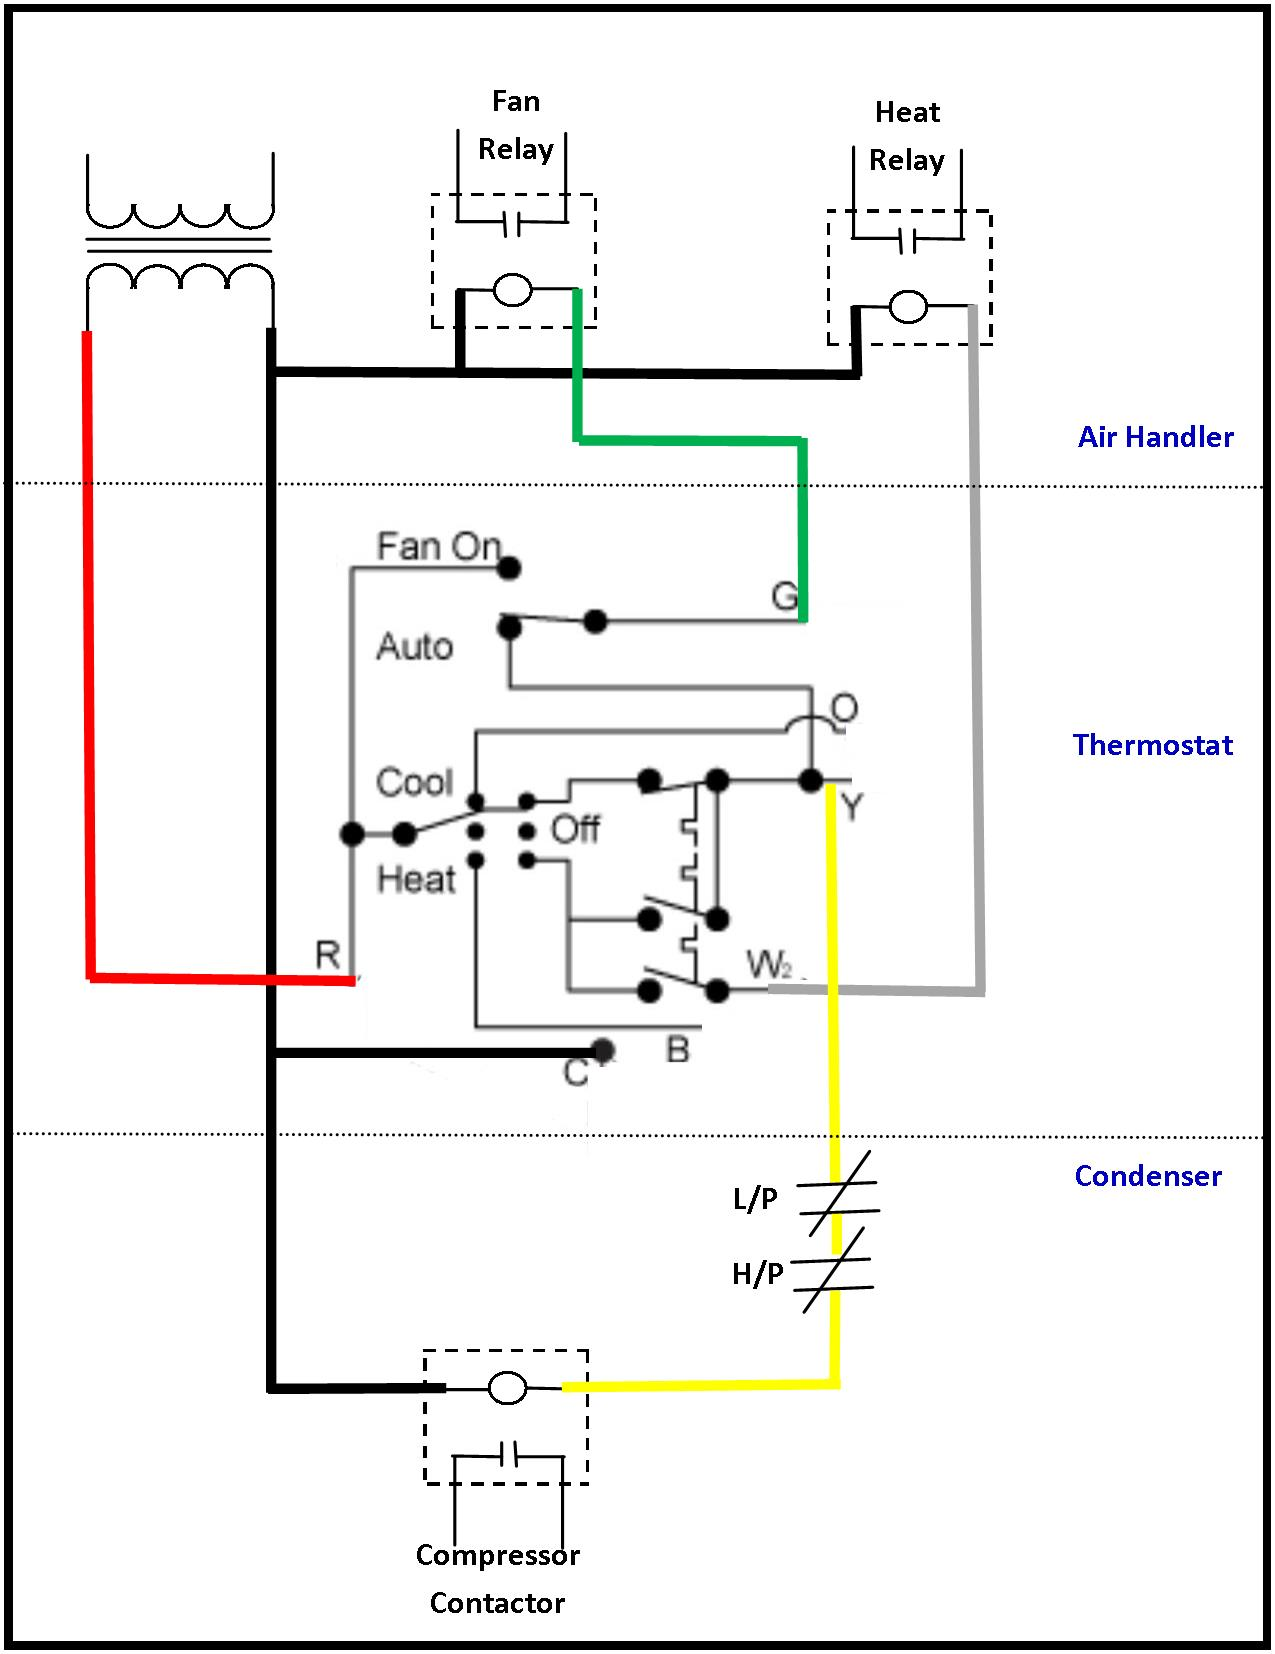 Contactor relay wiring diagram free engine